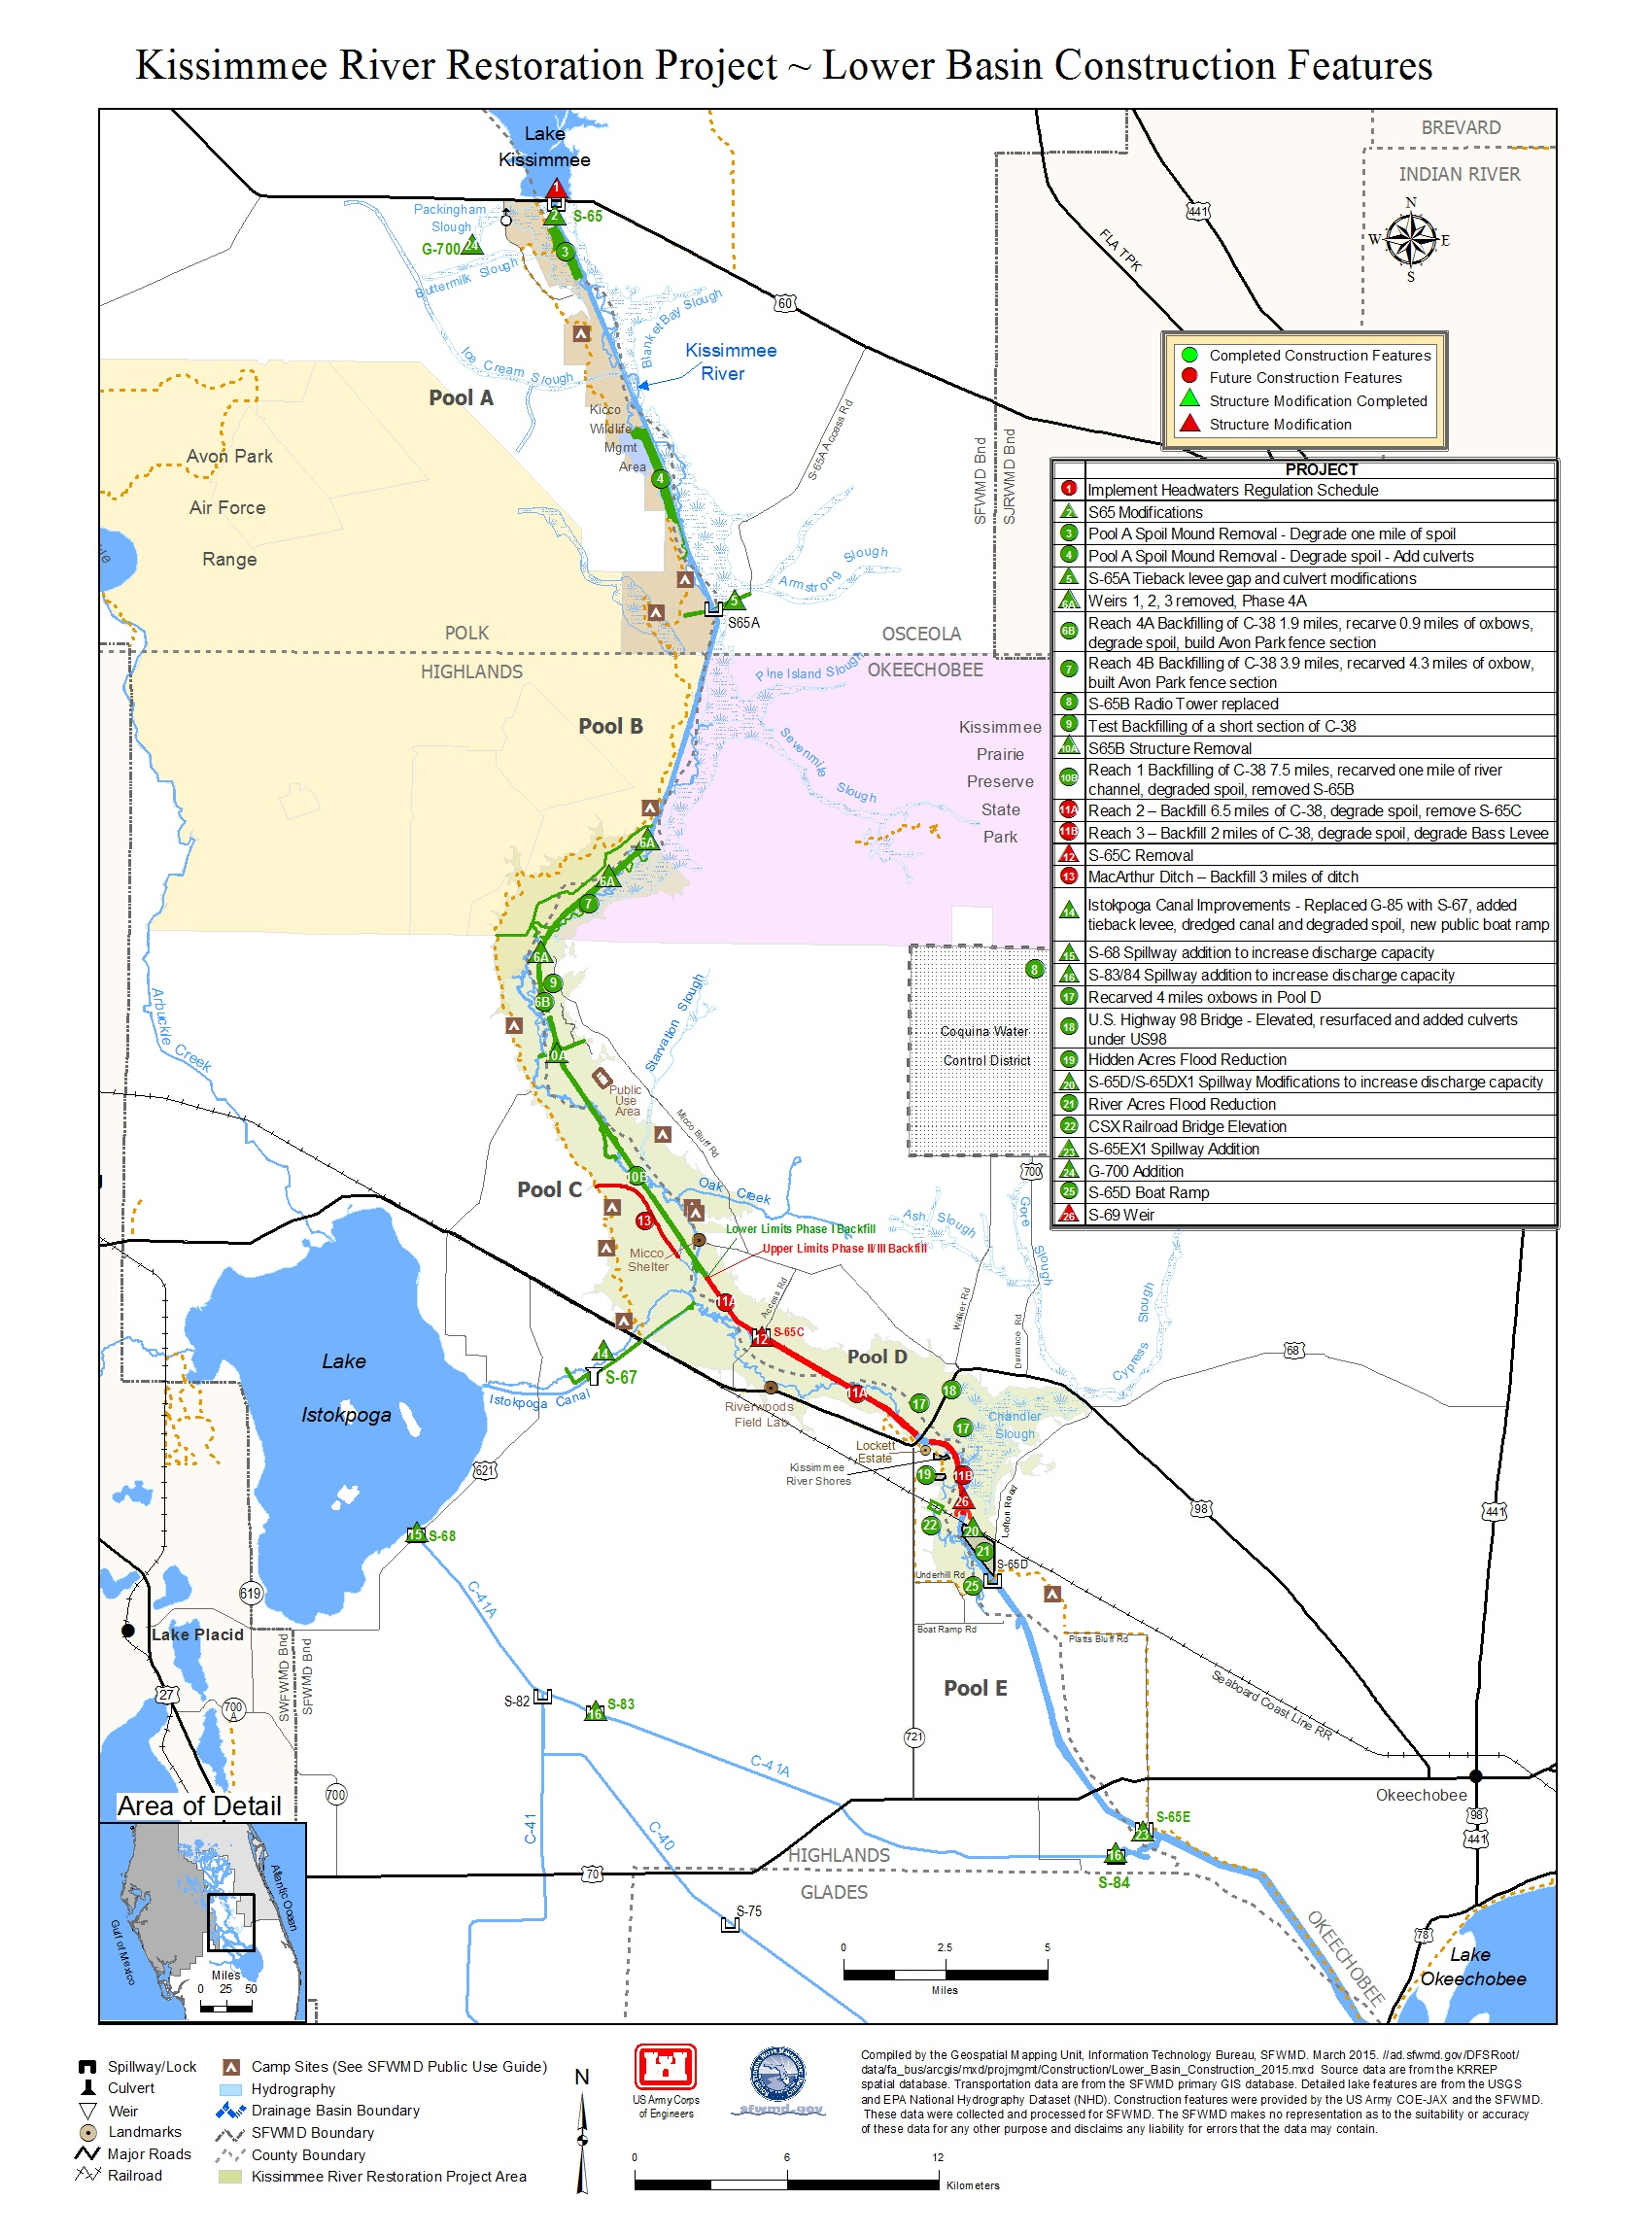 Map: 100700 Kissimmee River Restoration | South Florida Water ... on cedartown map, st pete's beach map, san francisco intl airport map, frostproof map, orange lake resort map, east orange county map, florida map, union park map, new york city map, palm beach atlantic university map, howey in the hills map, lakewood park map, southwest gulf coast map, lauderdale by the sea map, w palm beach map, tallahassee community college map, south daytona beach map, st. johns county map, largo map, clewiston map,